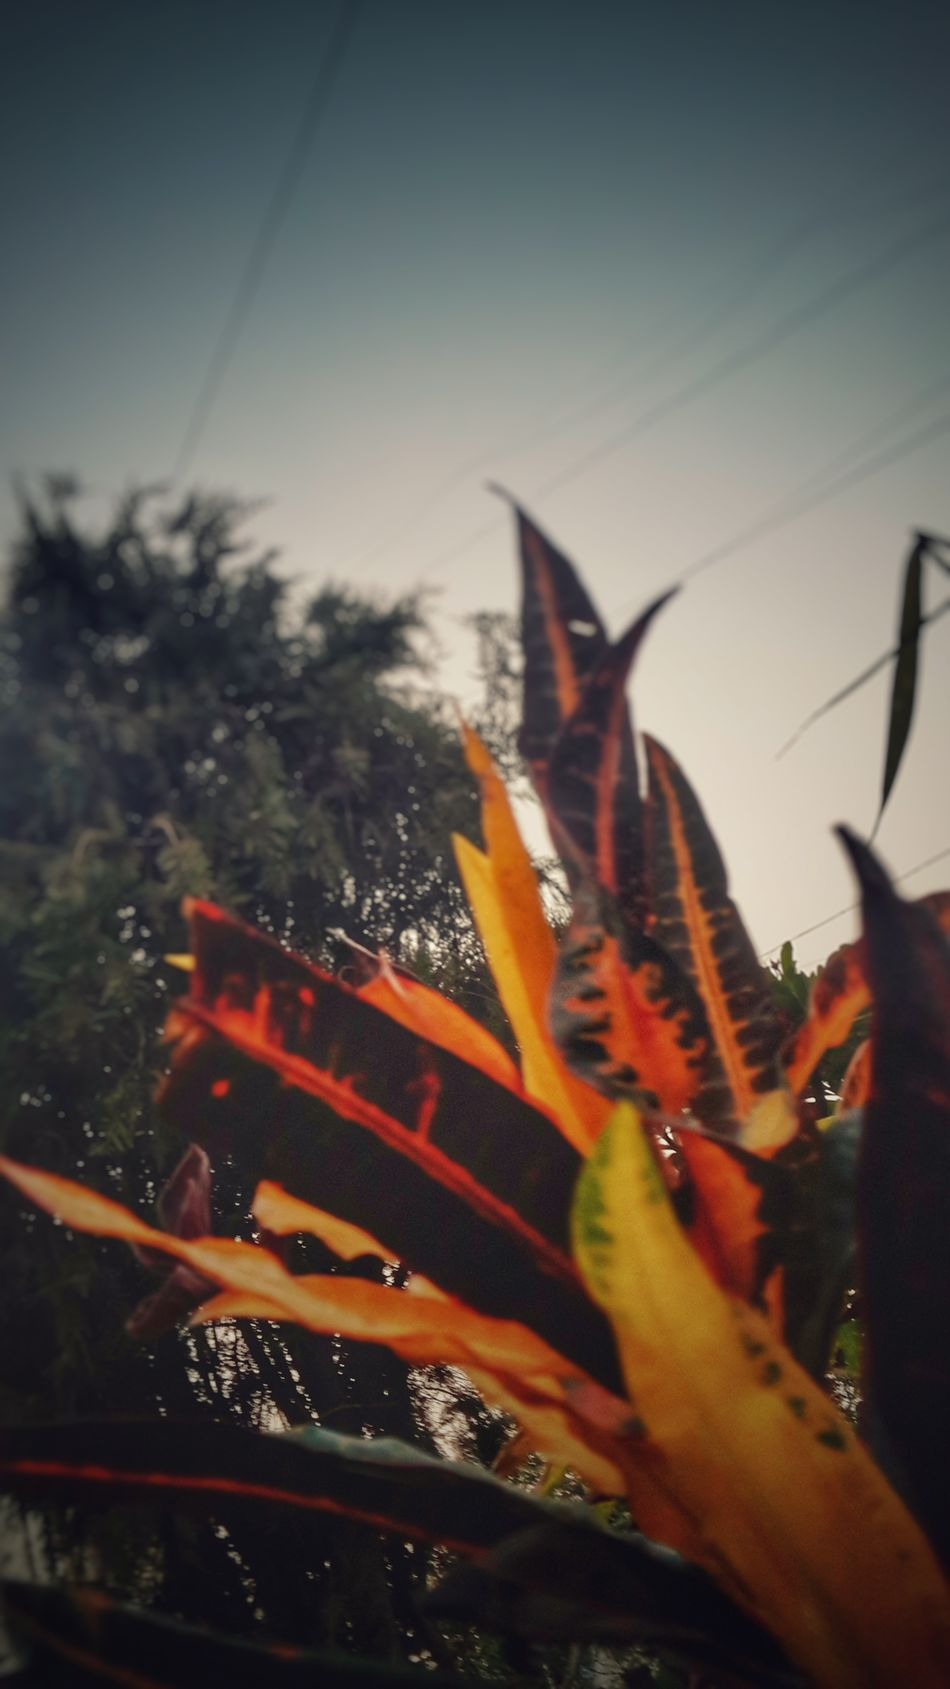 Outdoors No People Close-up Nature Day Beauty In Nature Trees And Bushes Red Leaves In Summertime Summer Memories 🌄 Early Morning Walk... EyeEmGalley Street Photography Freshness No Filter, No Edit, Just Photography Multi Coloured